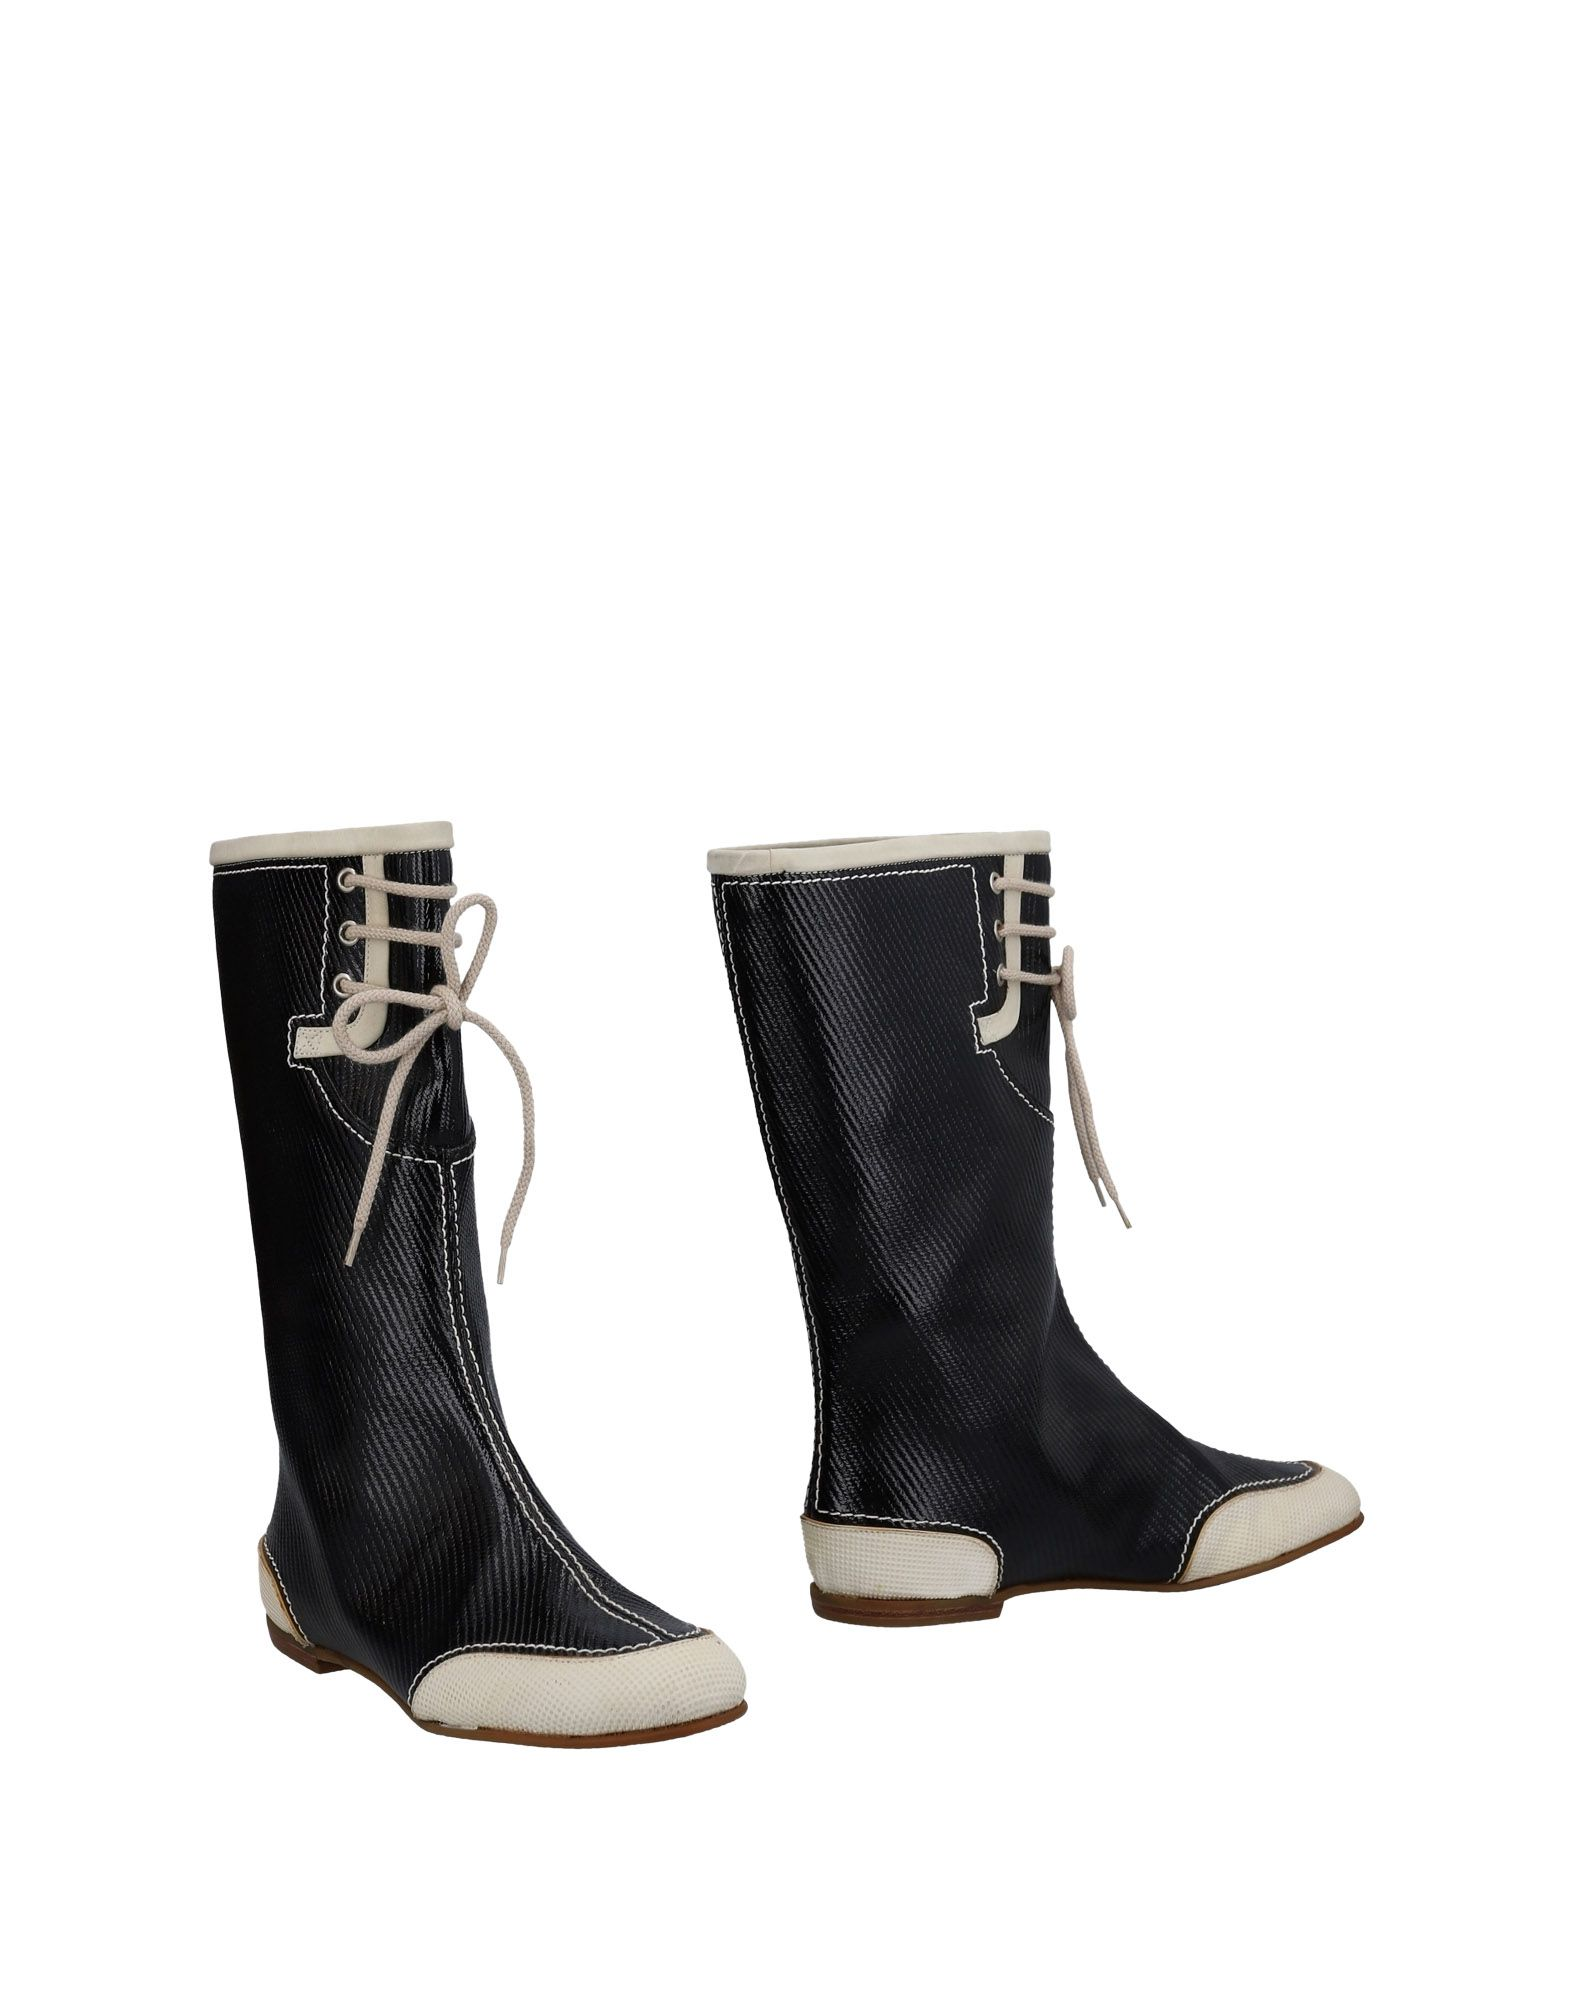 Vicini Boots - on Women Vicini Boots online on -  Canada - 11484670LT 1a9924